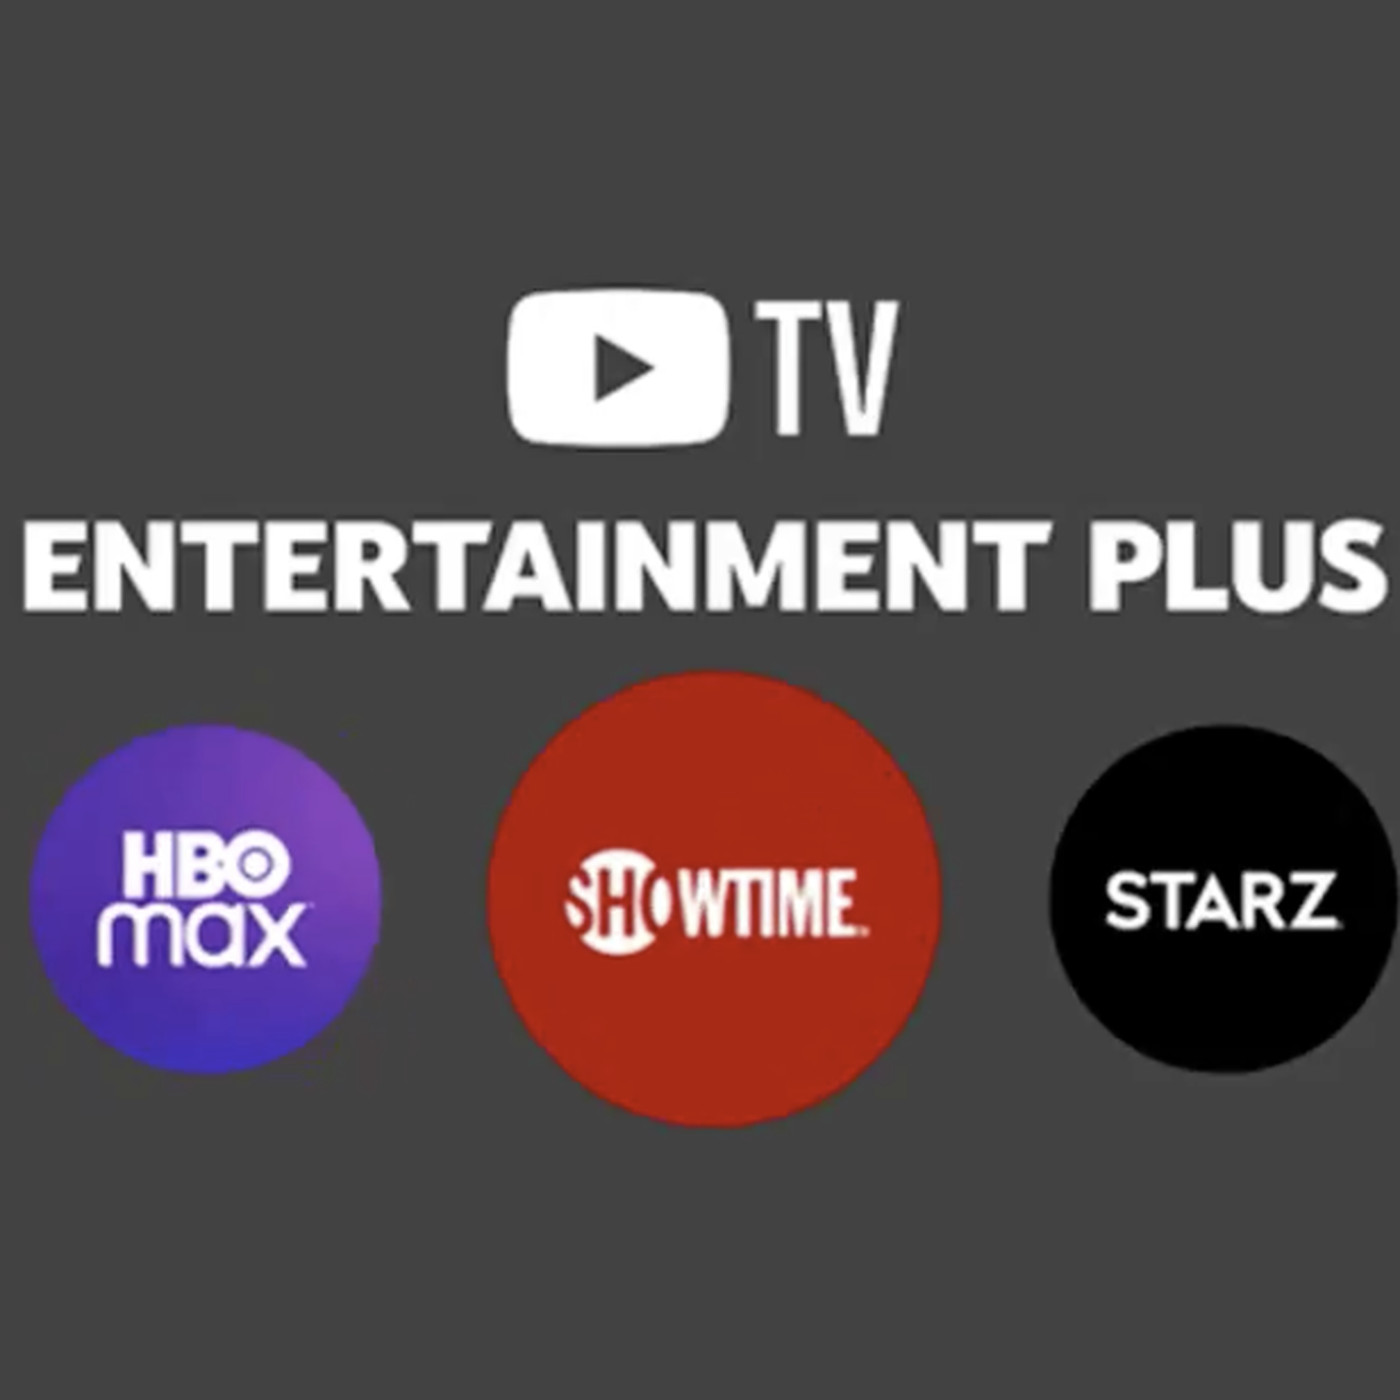 Youtube Tv Offering Hbo Max Showtime And Starz For 5 Less In New Bundle The Verge